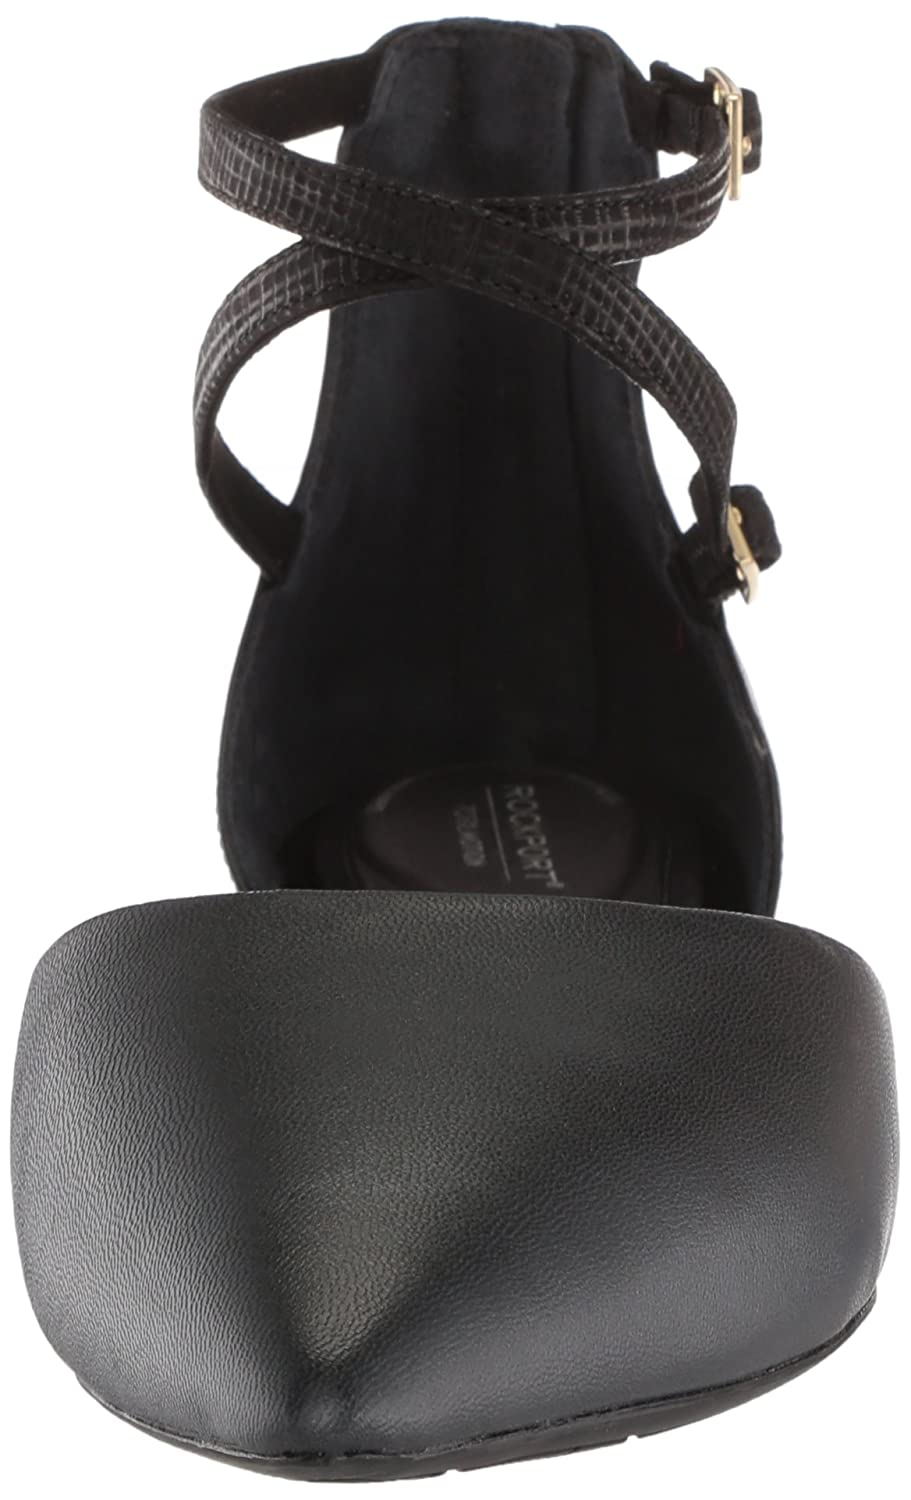 Rockport Women's Total 10 Motion Adelyn Ankle Ballet Flat B073ZRQXXC 10 Total B(M) US|Black 7180c2